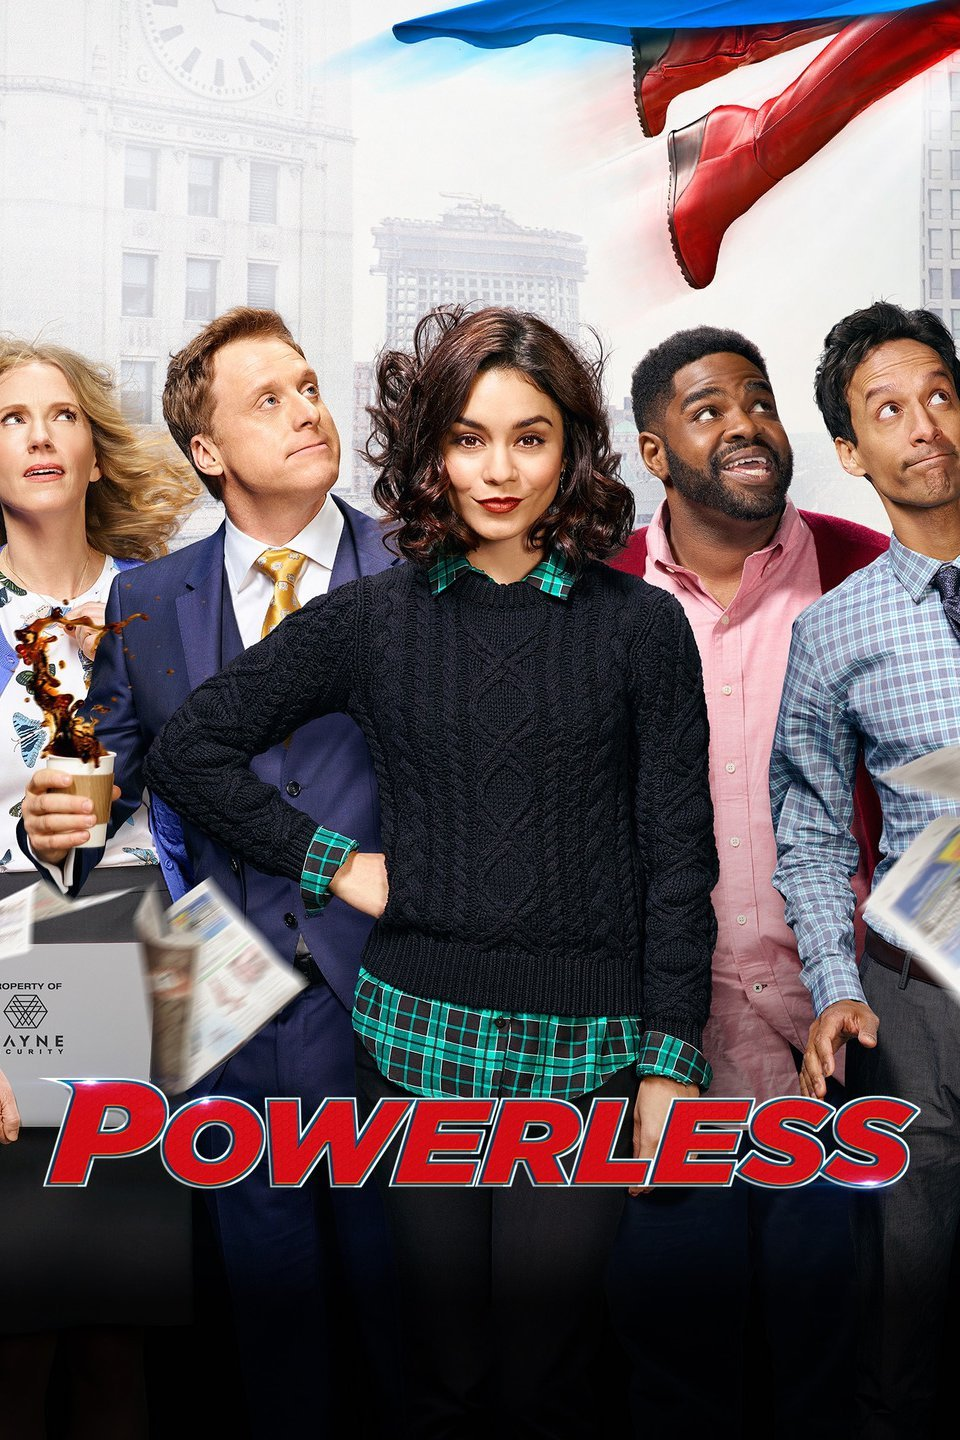 Powerless Season 1 Episode 9 Download 480p WEB-DL 100MB